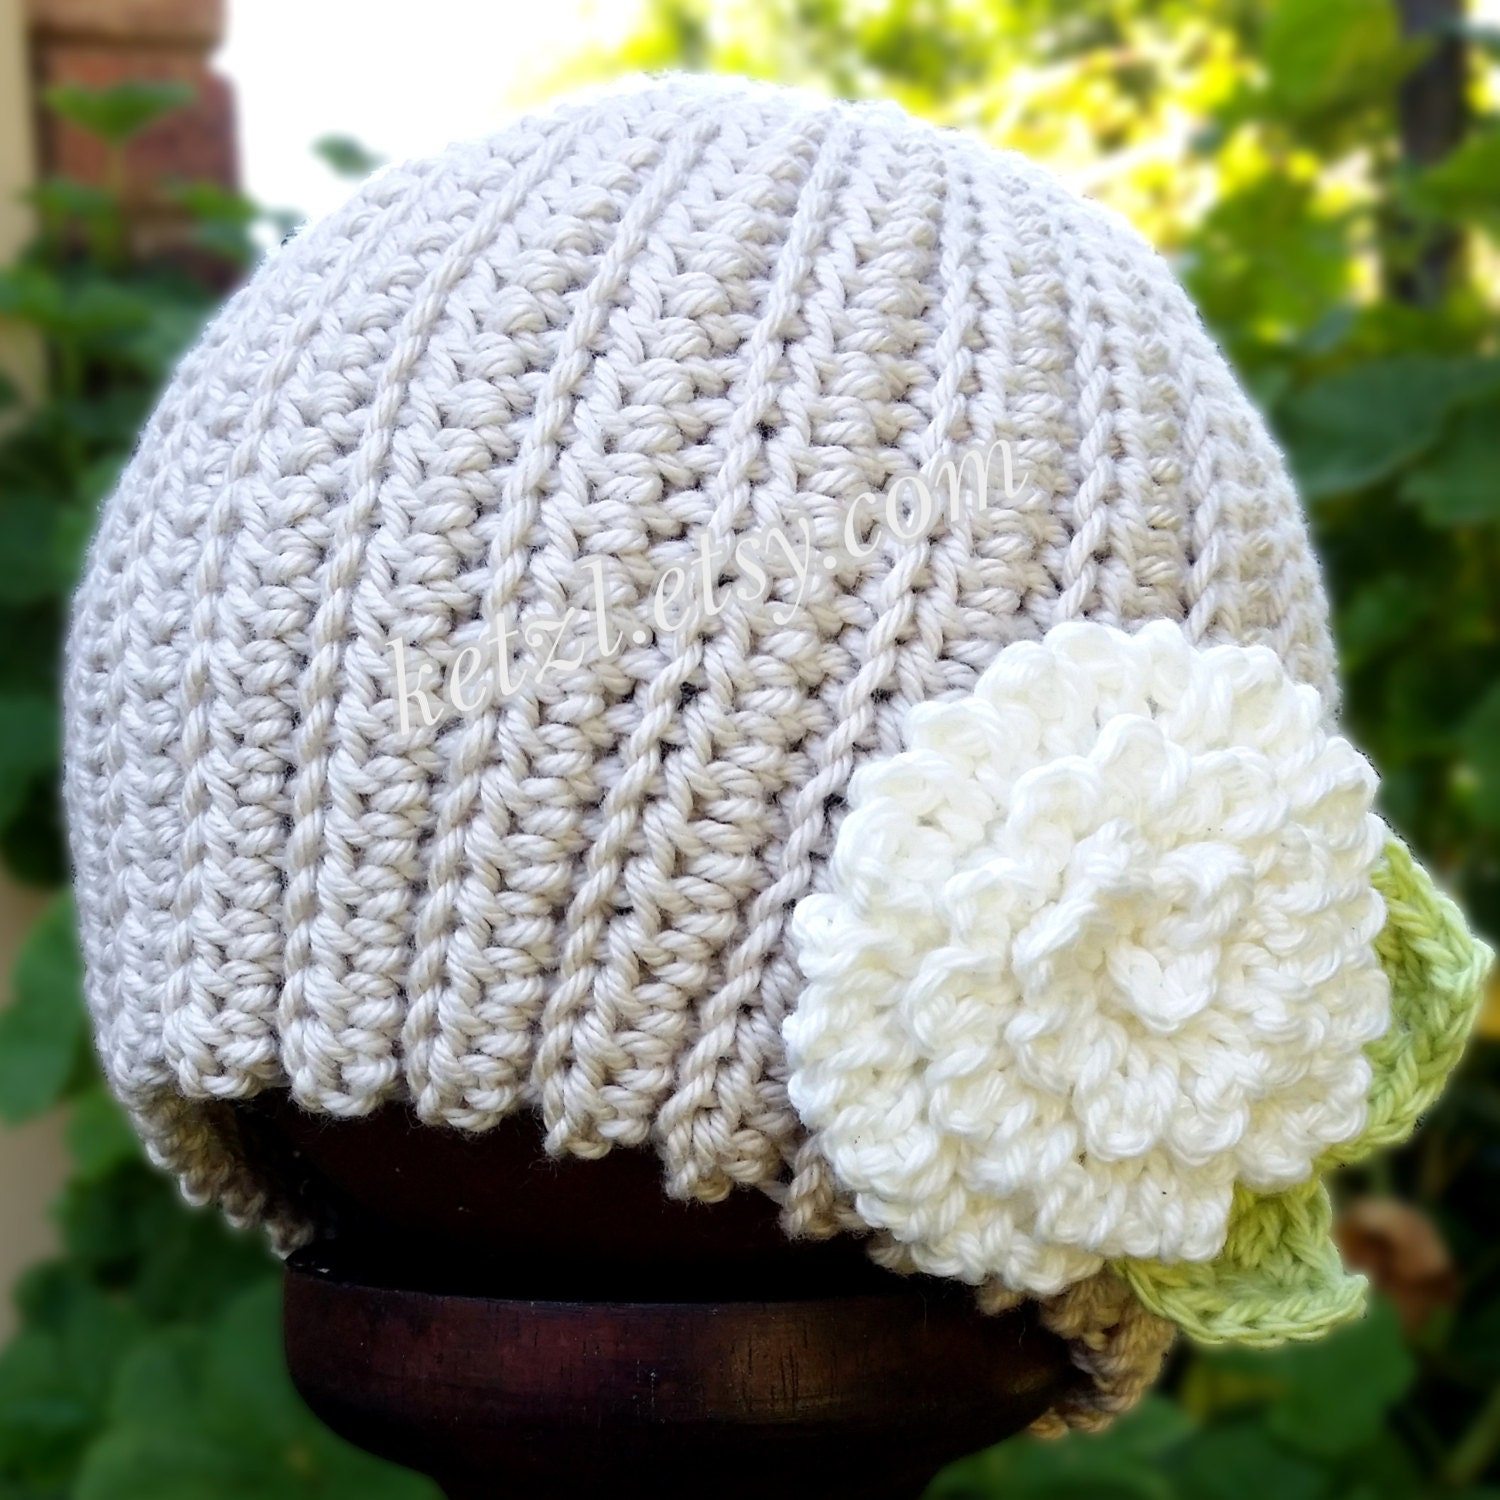 Crochet Beanie Pattern With Flower : Crochet pattern baby beanie hat with chrysanthemum big flower